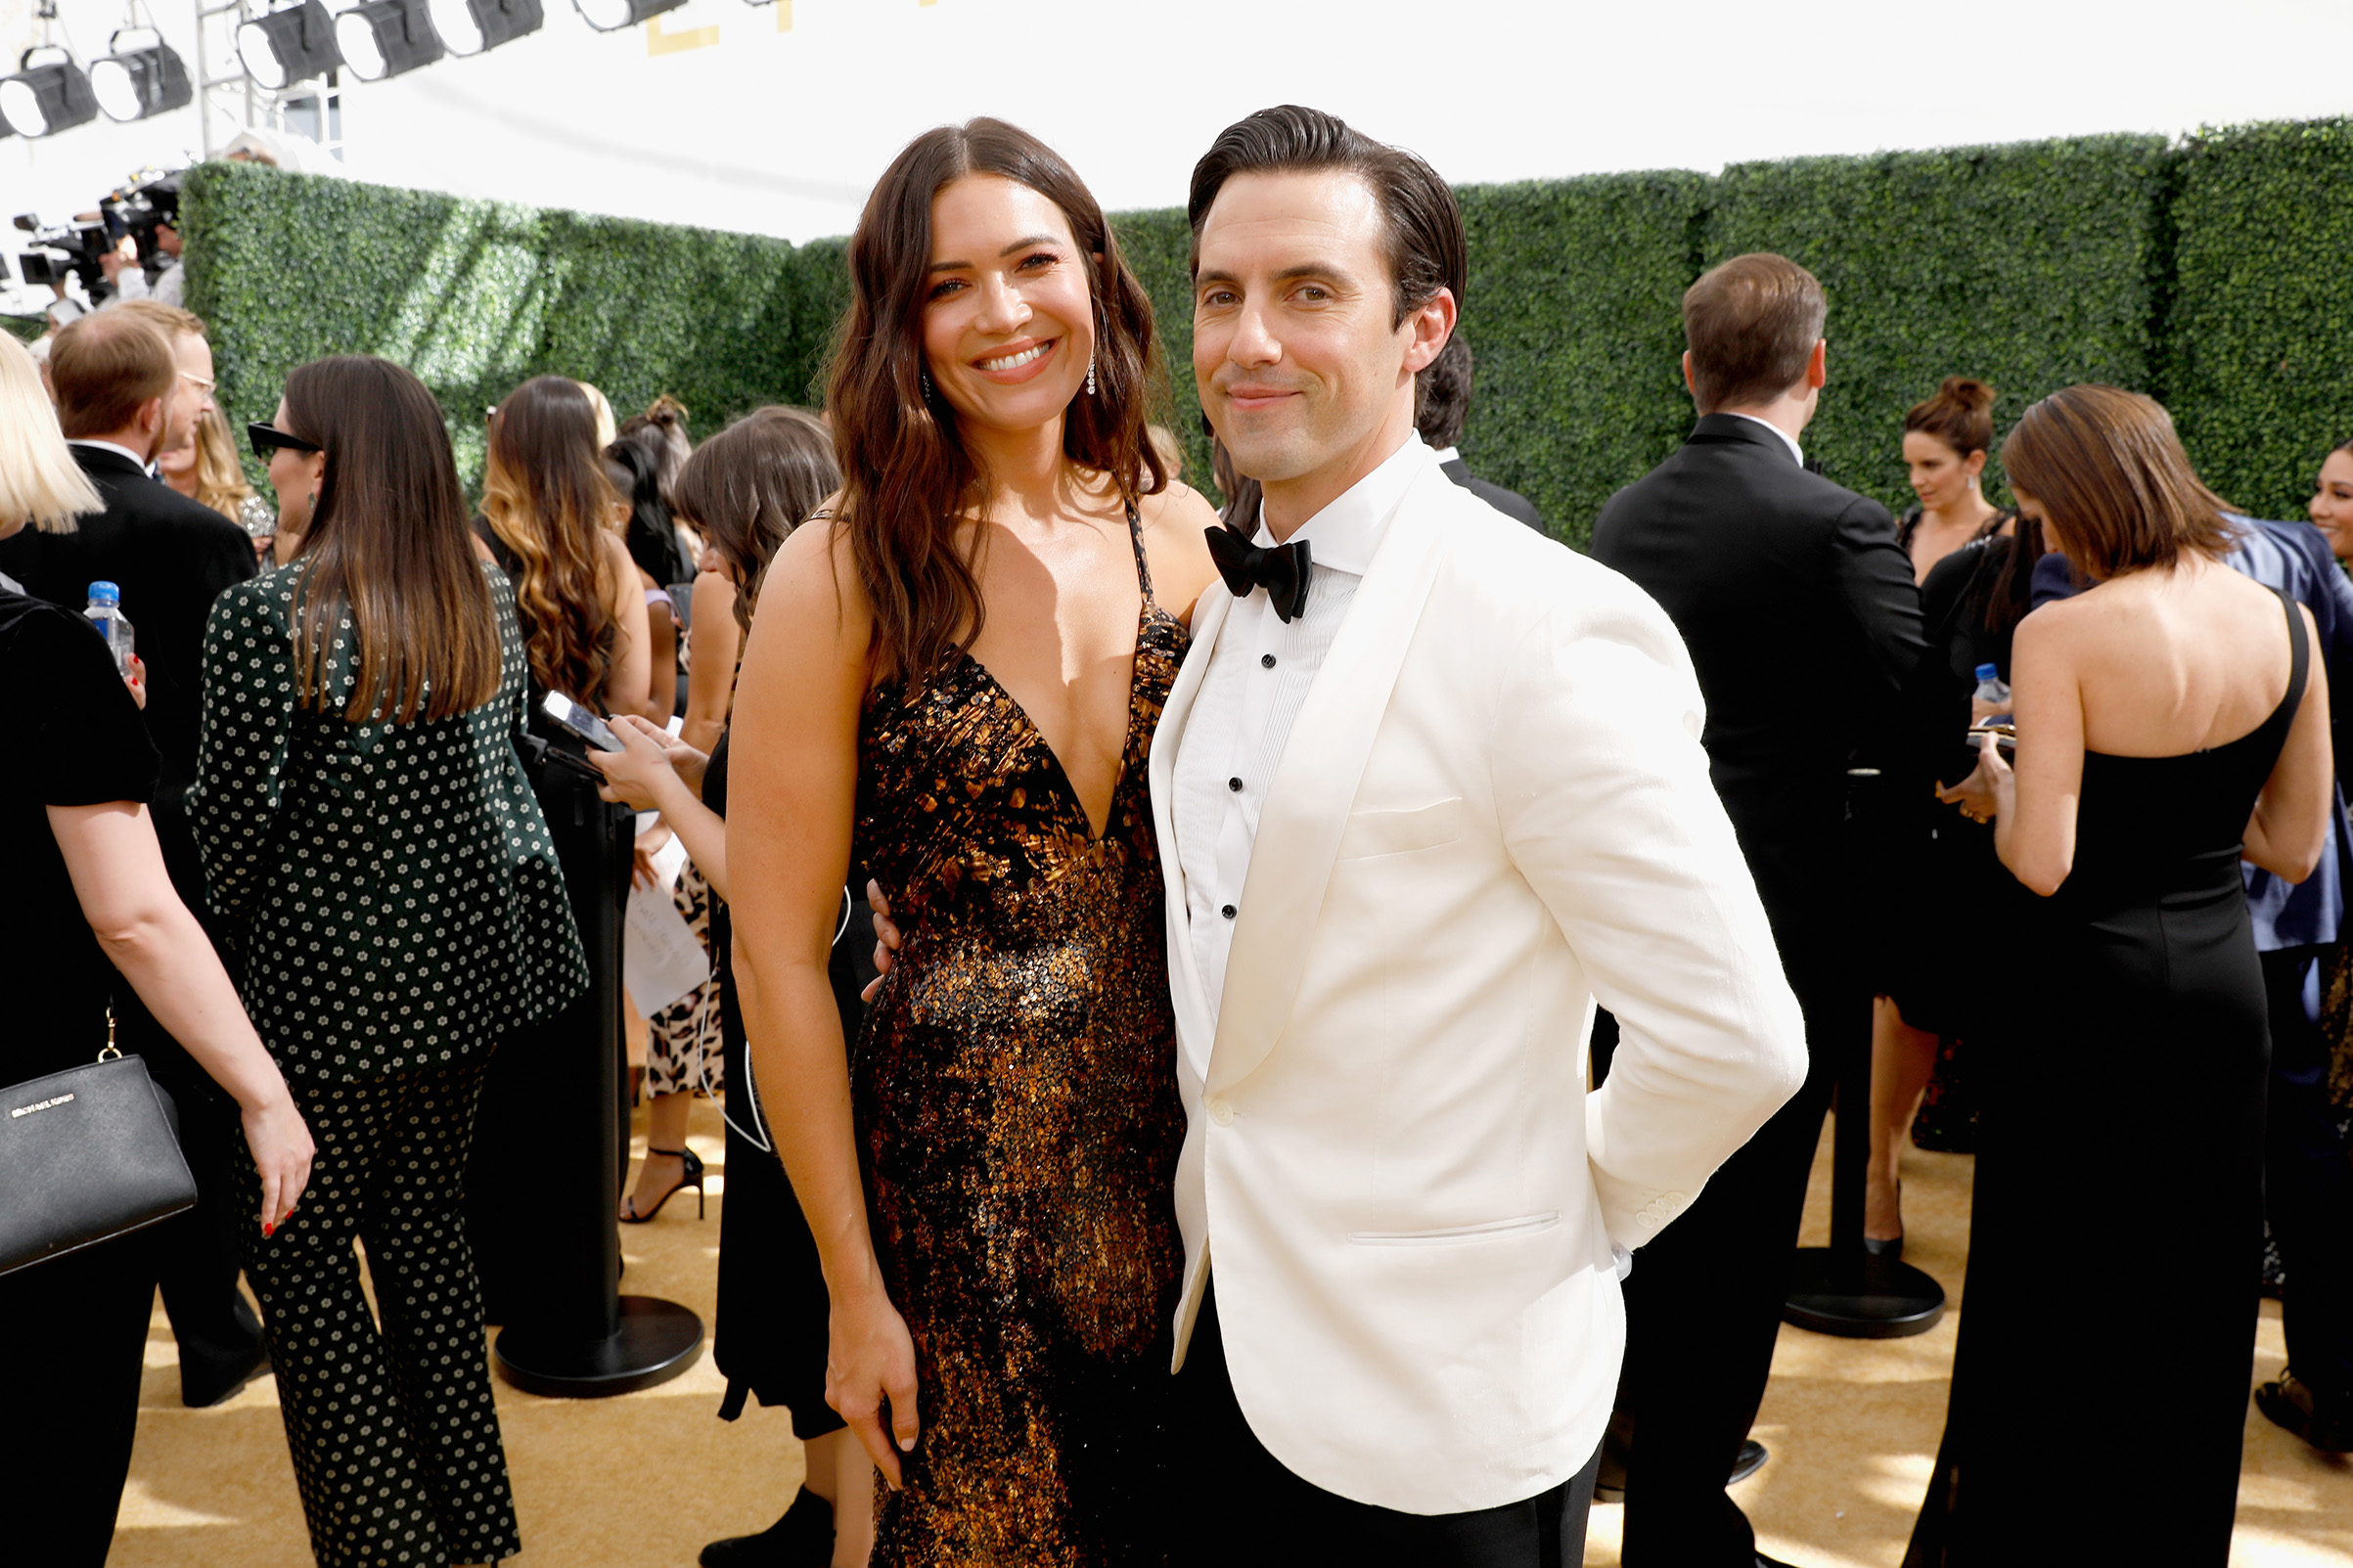 Actors Mandy Moore and Milo Ventimiglia arrive to the 70th Annual Primetime Emmy Awards on Sept. 17.